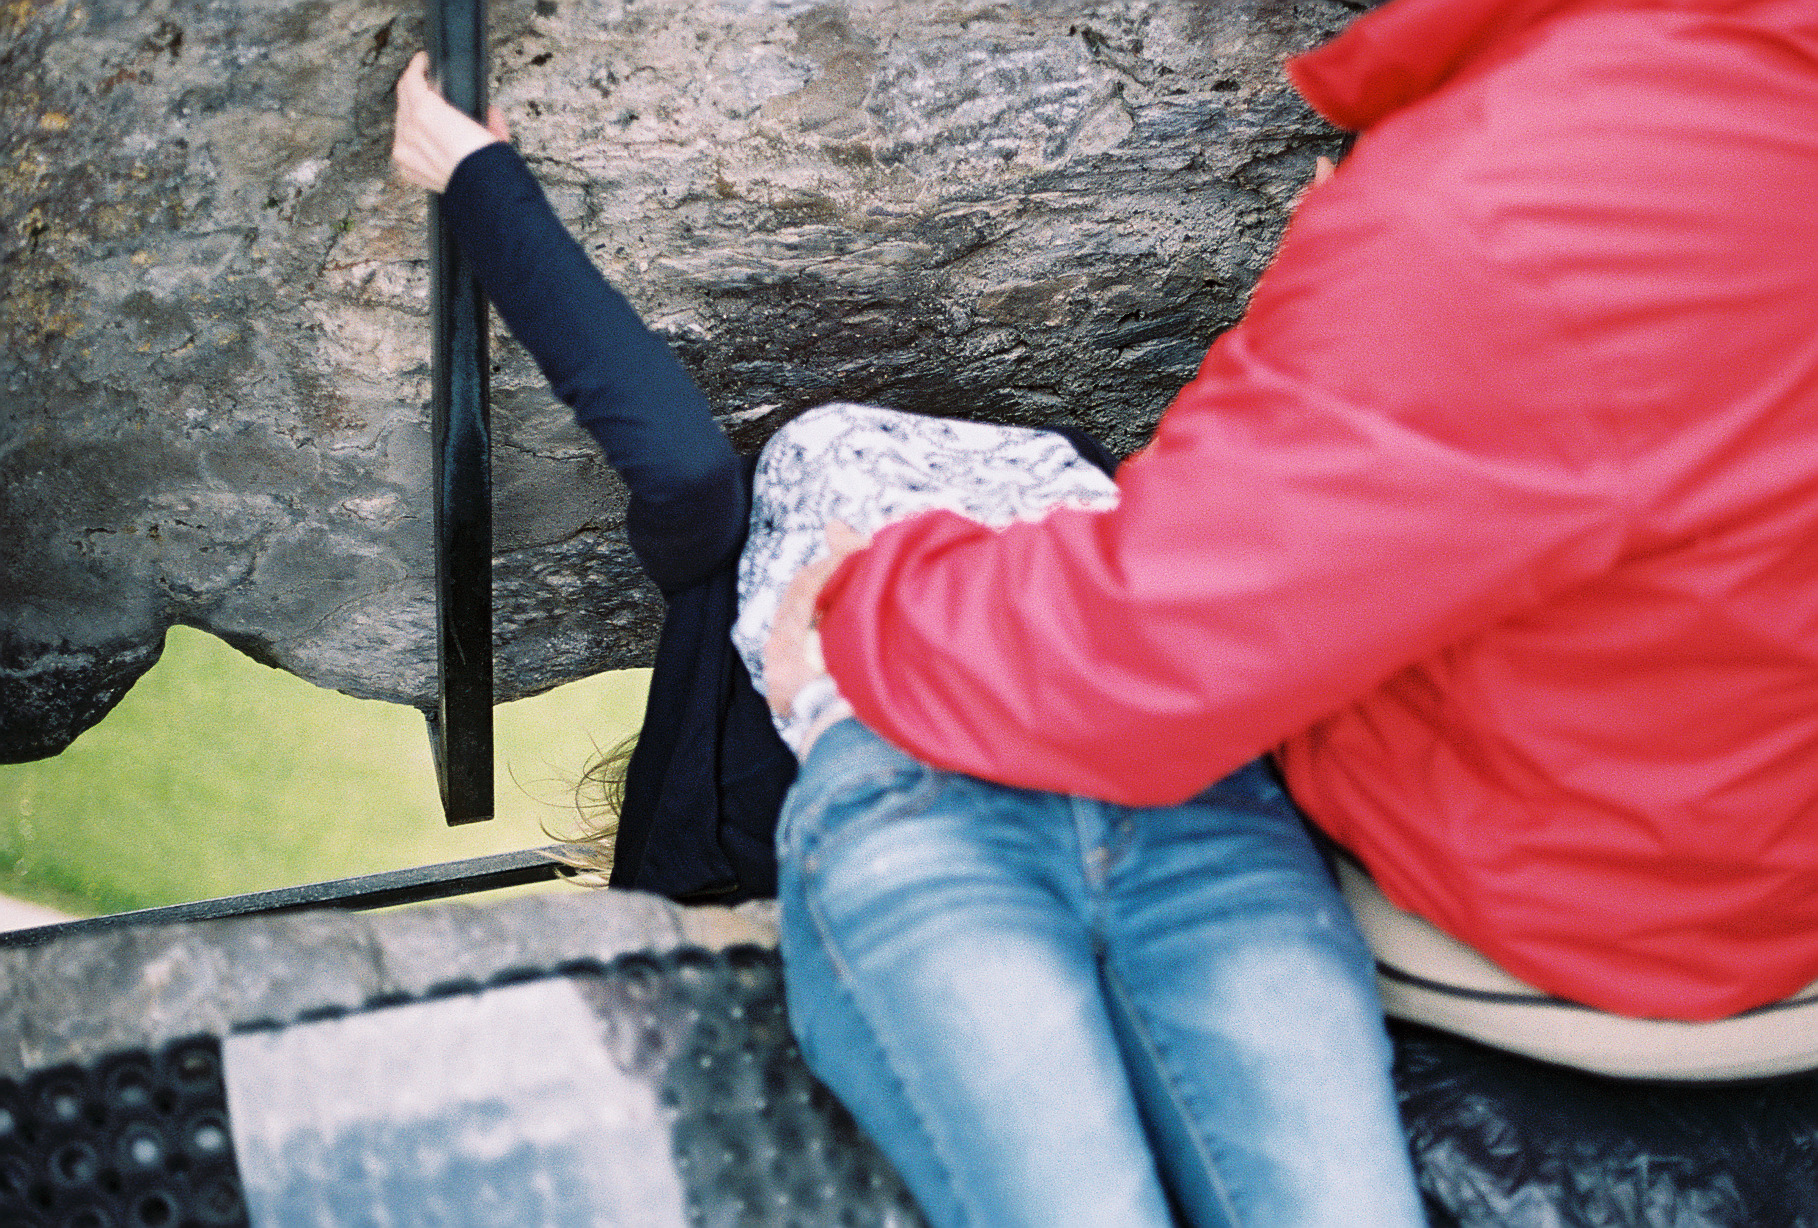 kissing-blarney-stone-ireland-european-honeymoon